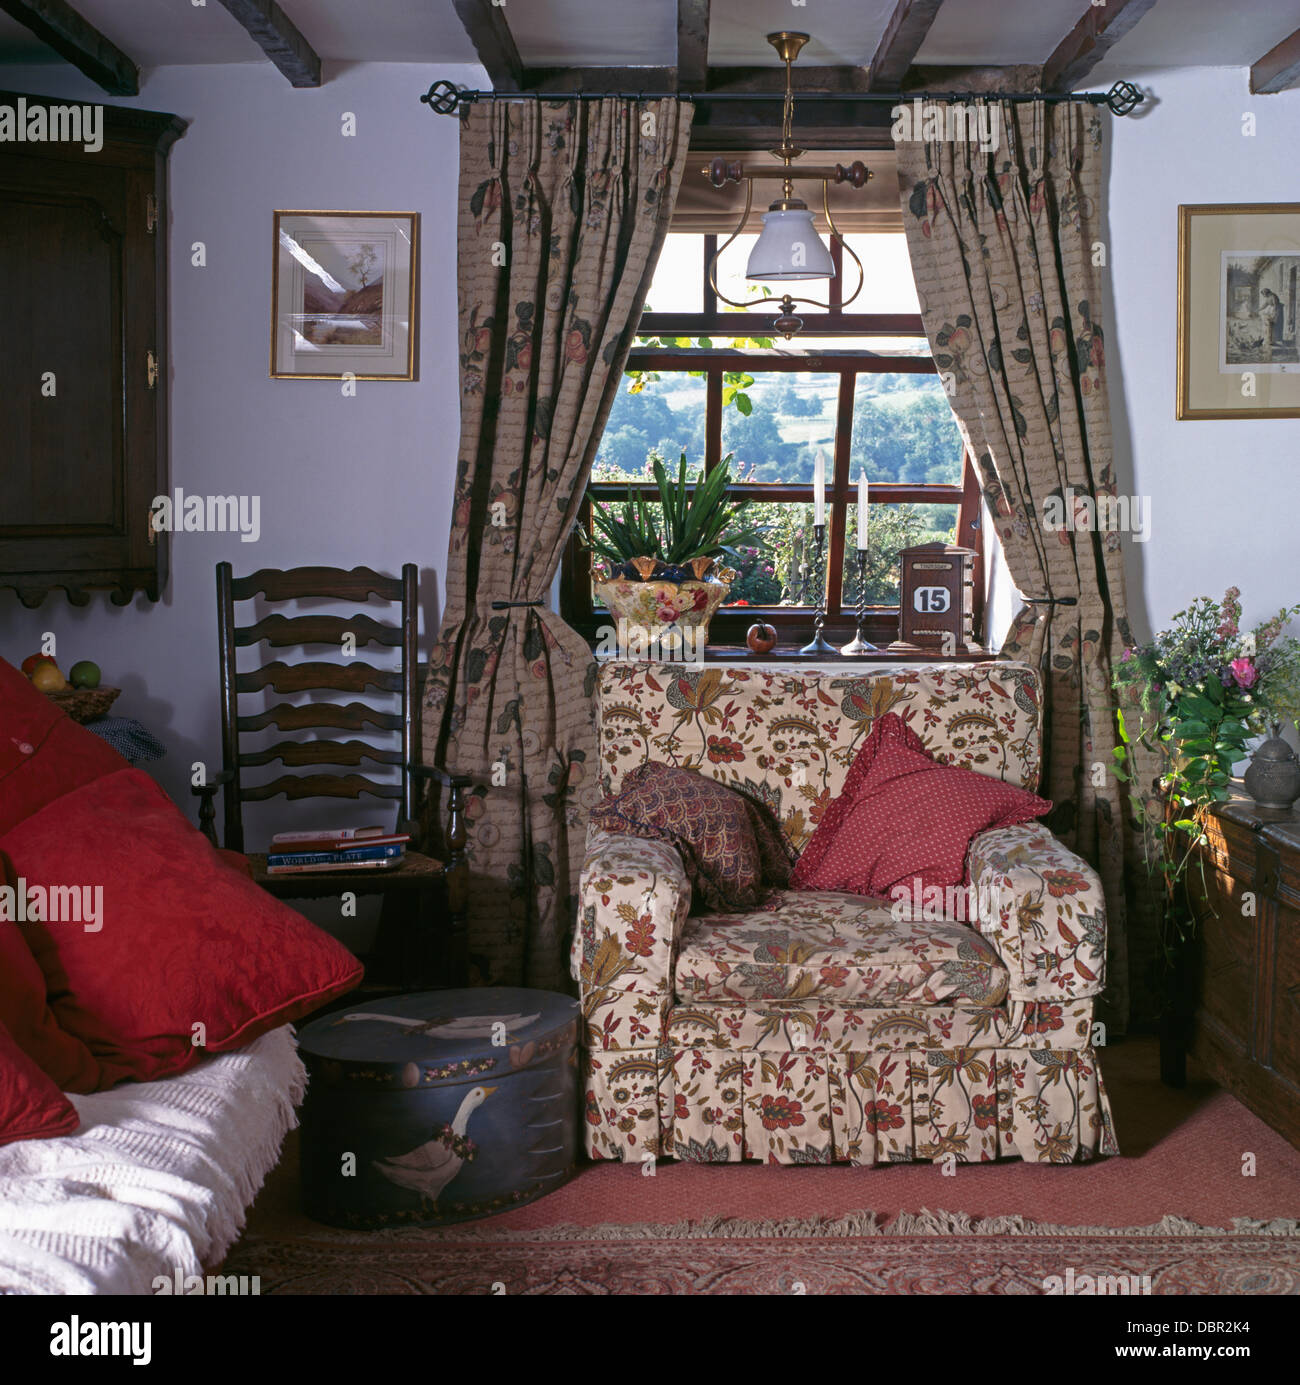 Great Patterned Drapes On Window Above Floral Armchair In Cottage Living Room  With Antique Ladder Back Part 31